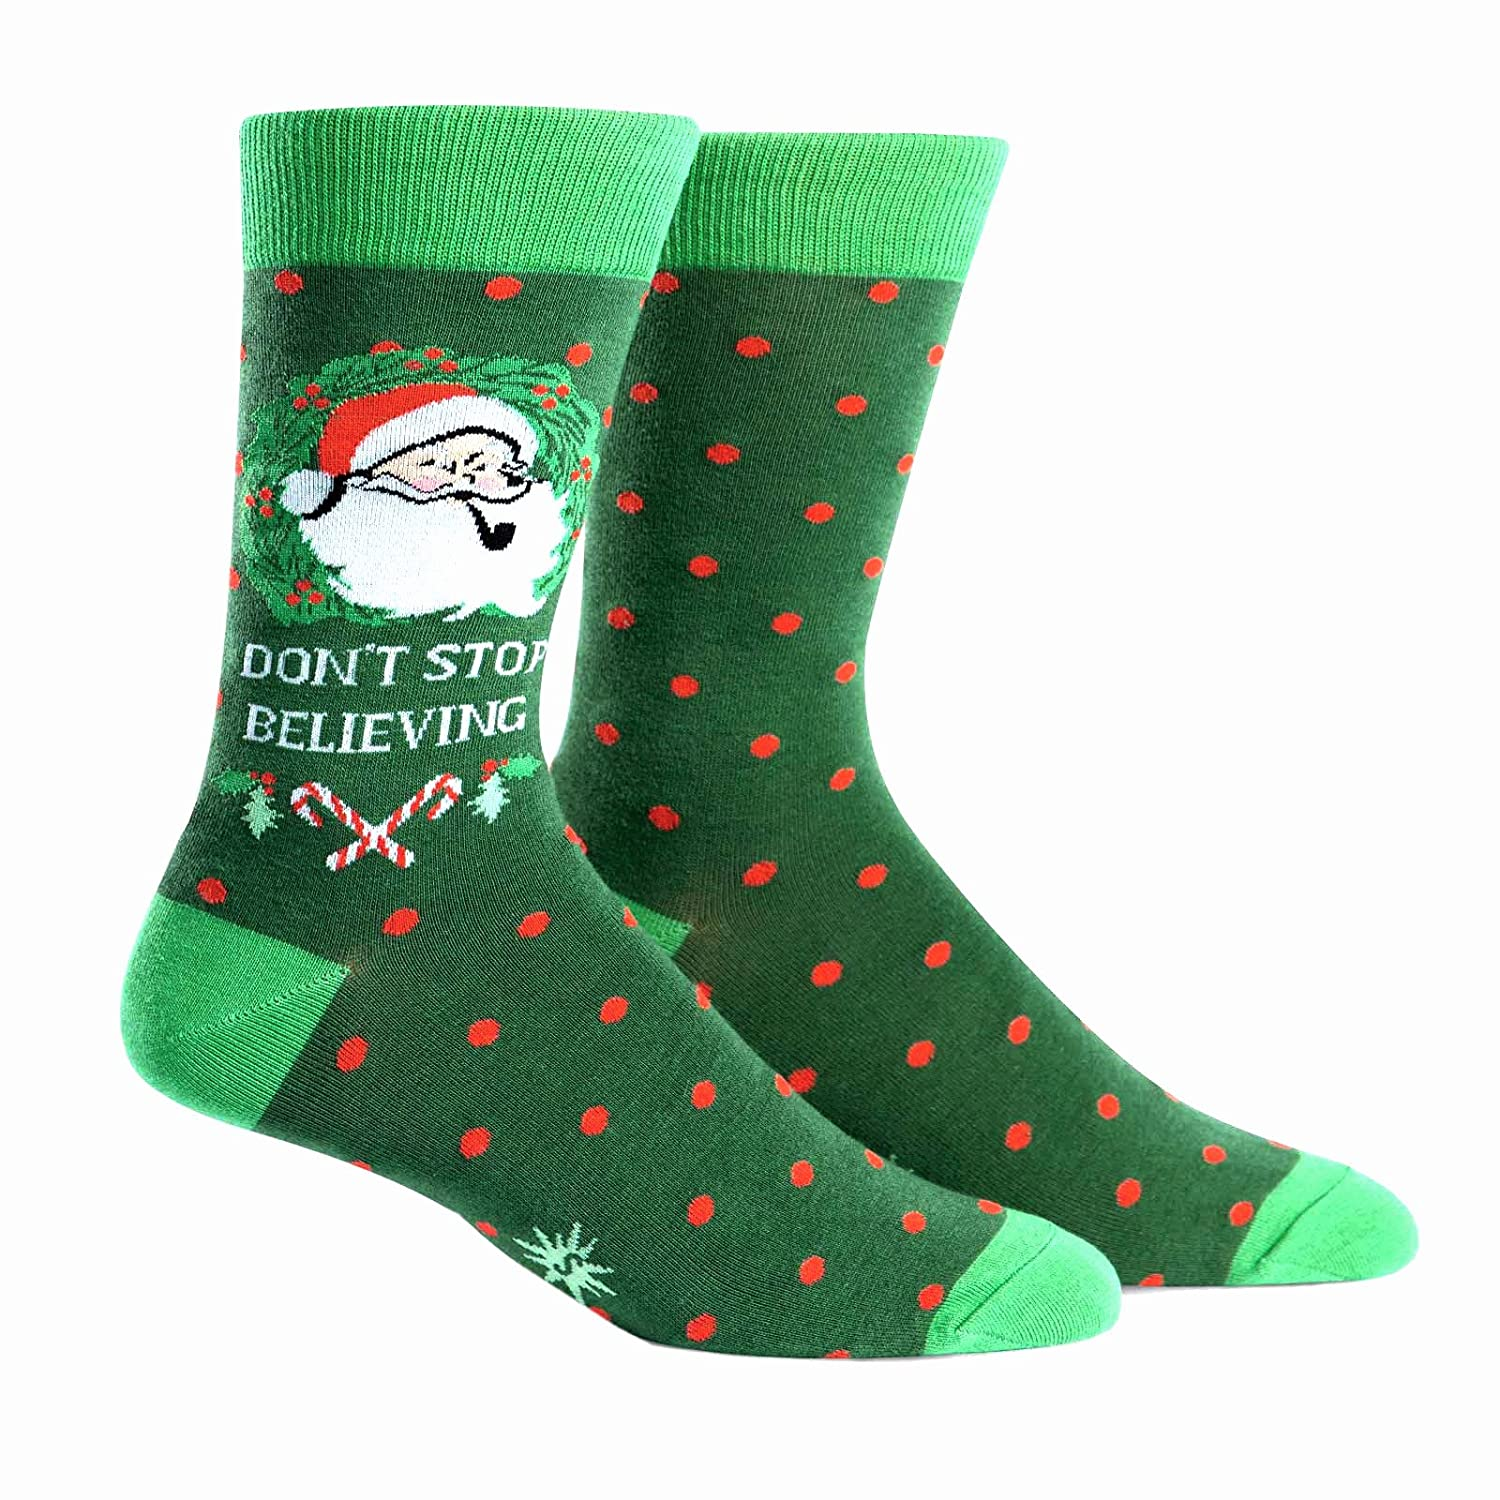 Sock It To Me Men's Santa Claus Crew Socks - Don't Stop Believing MEF0192